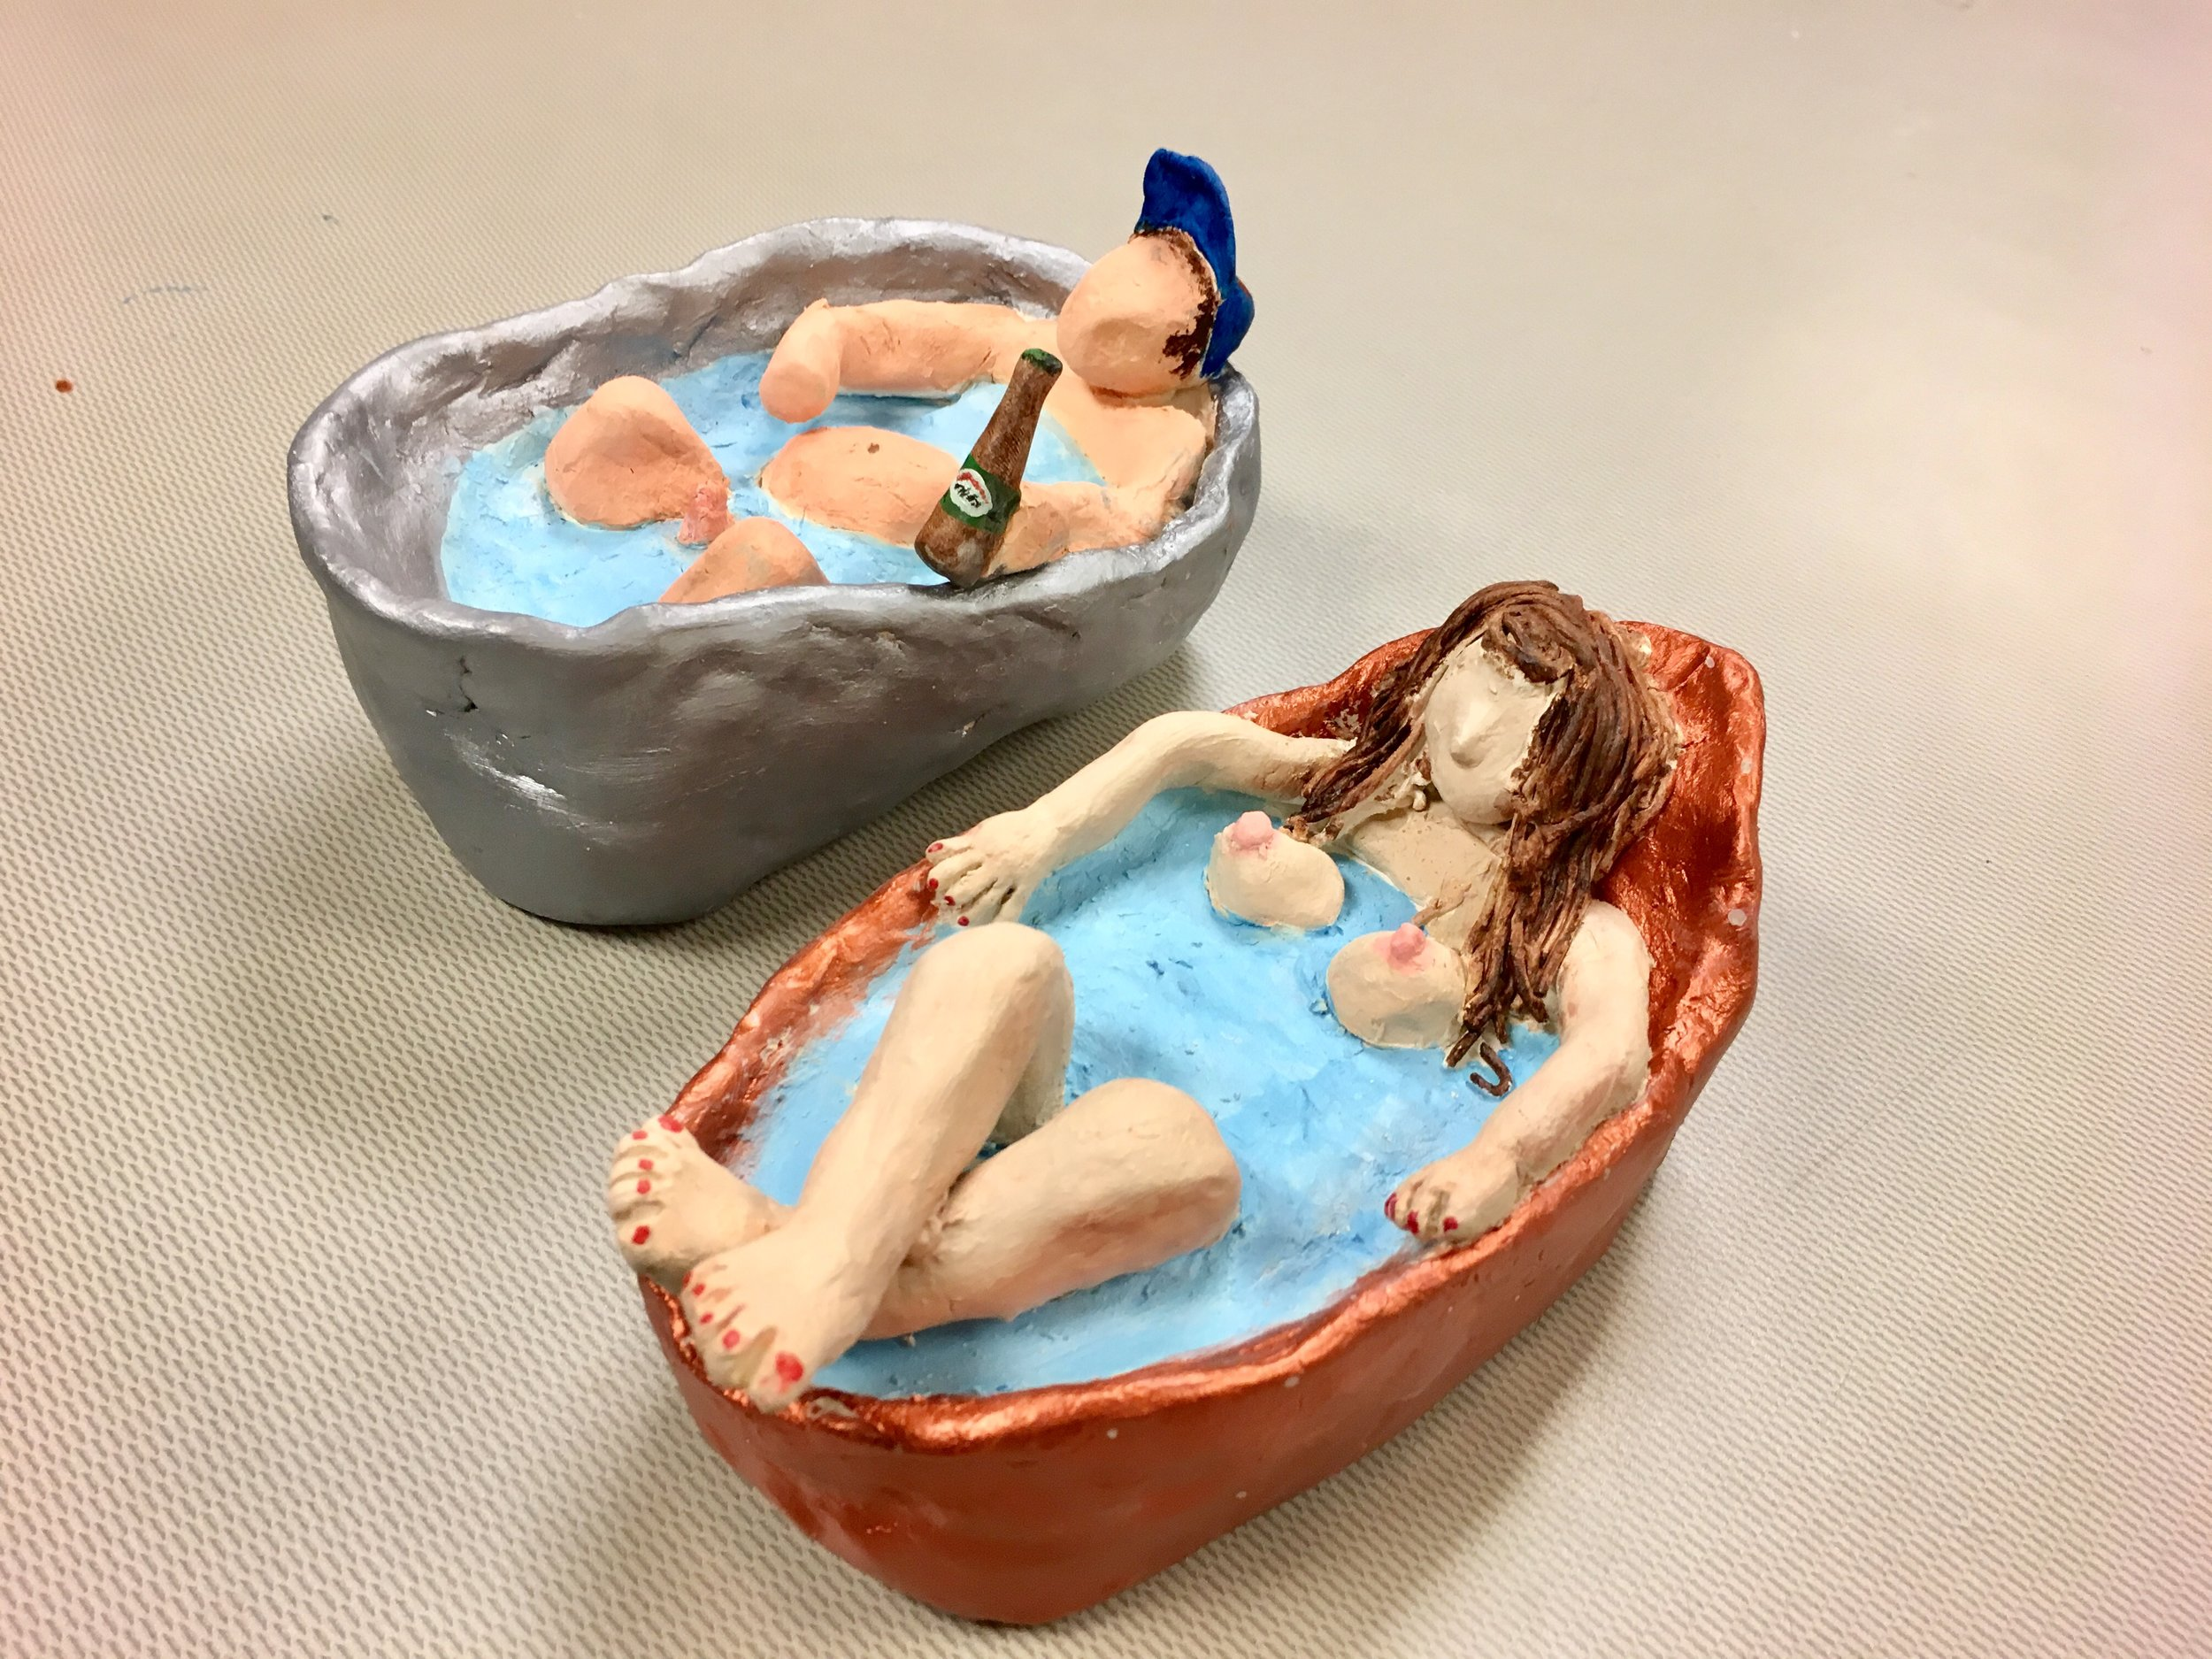 Photo Description: To the left is a sculpture of a naked man in a silver bath with his knees bent out of the water and his stomach and penis protruding from the water as he holds a beer and wears a blue cap. To the right is sculpture of naked woman in a rose gold bath with her legs crossed on the edge of the bath with her breasts protruding out of the water.